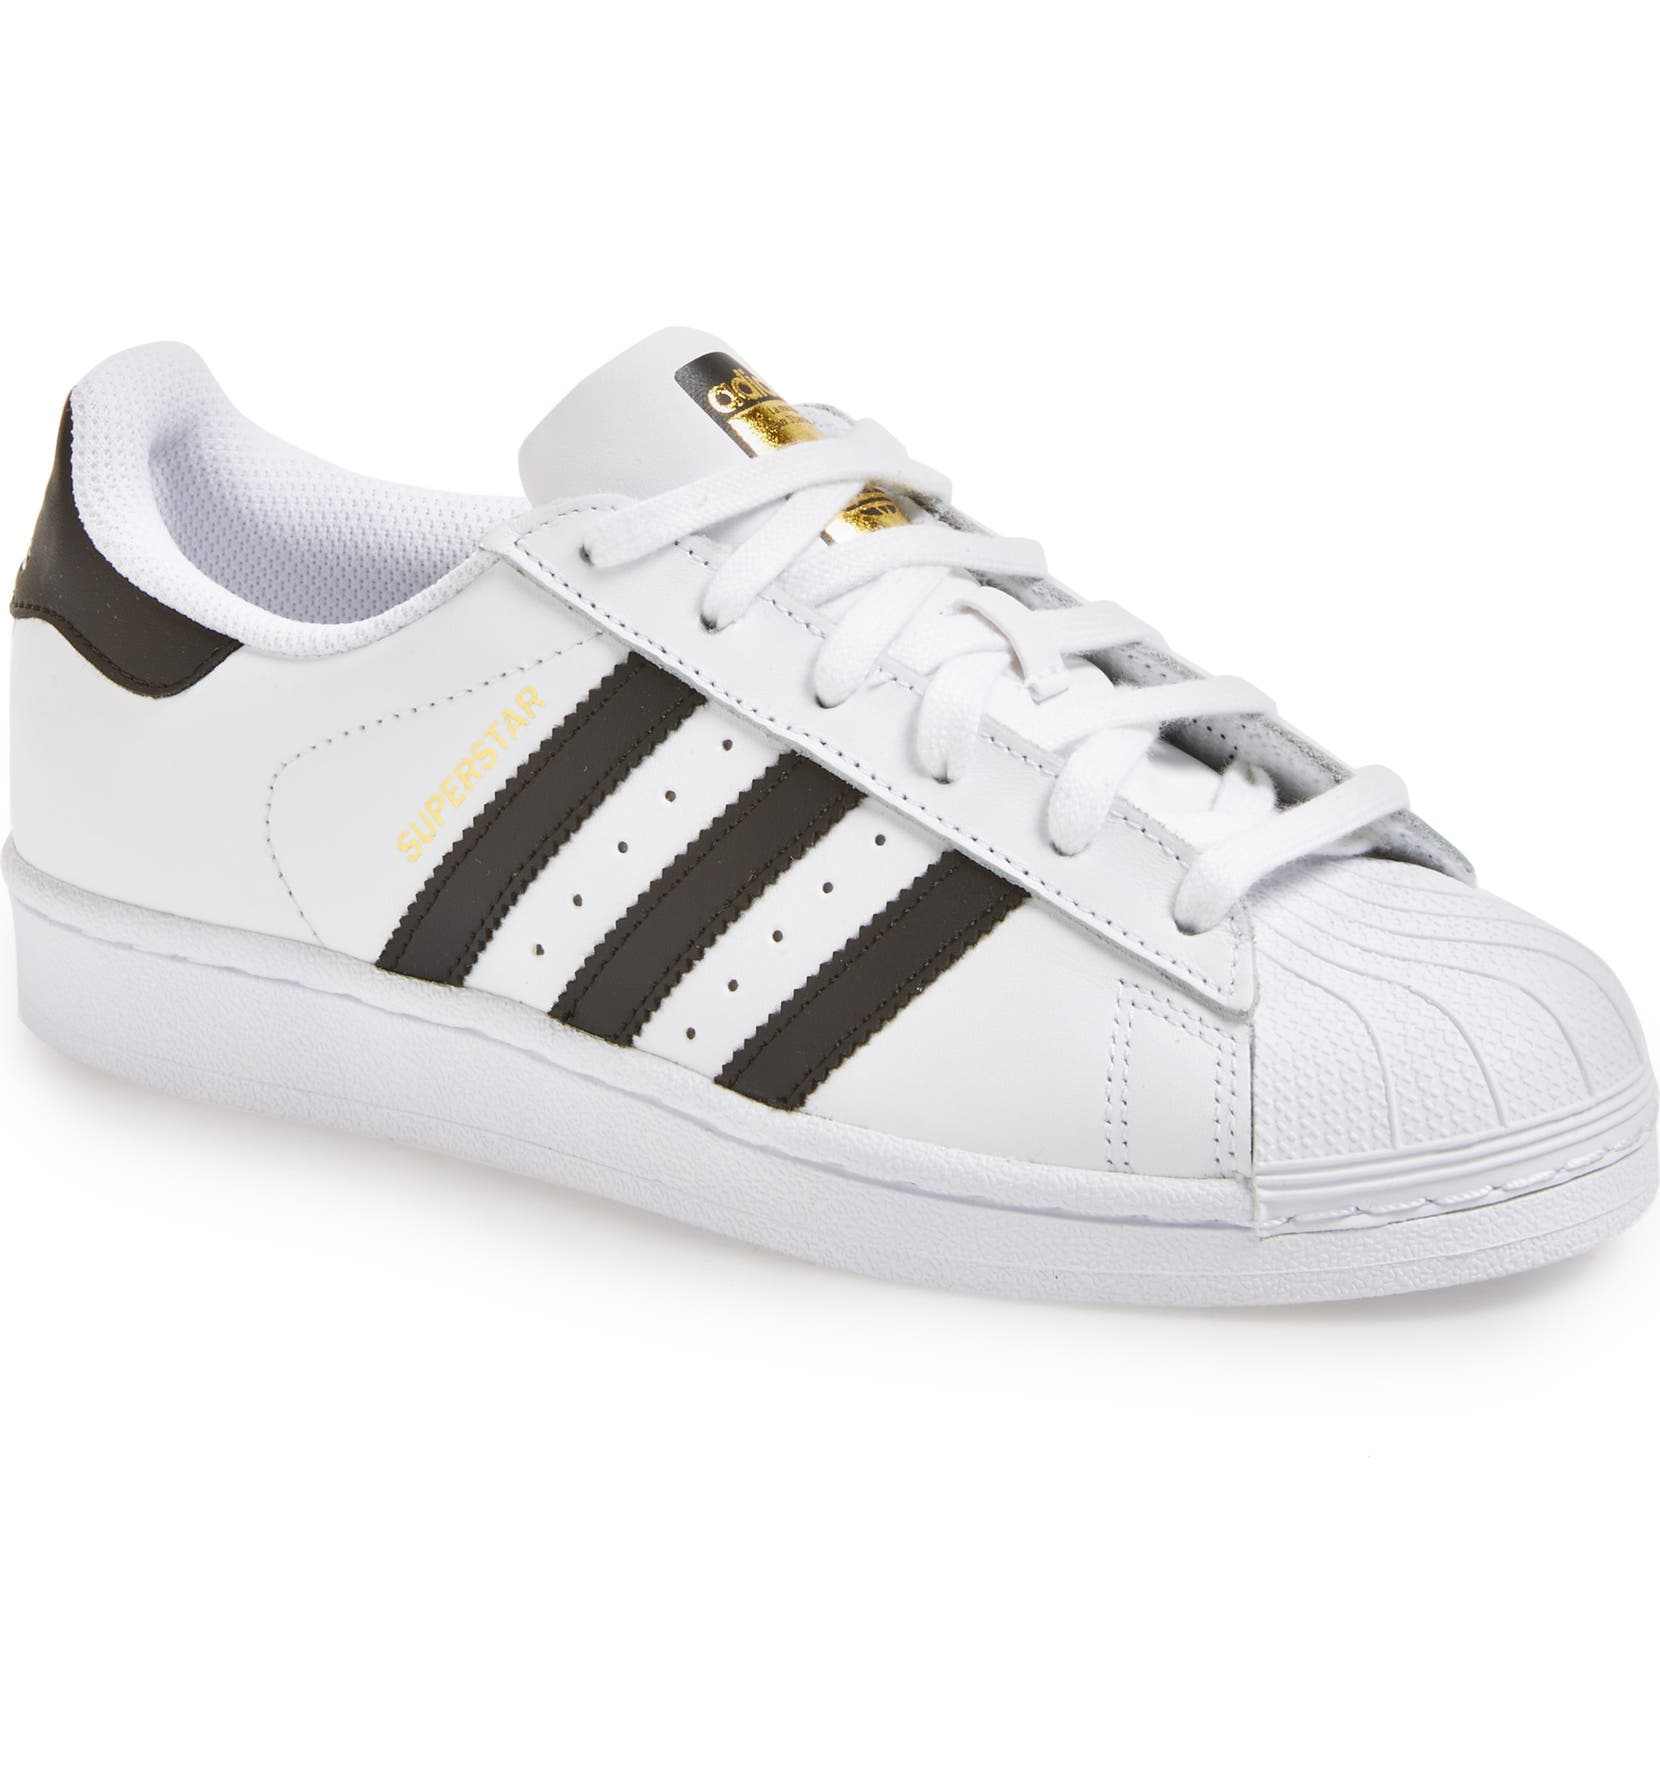 separation shoes 5dc3b ce87c adidas Superstar Sneaker   Nordstrom